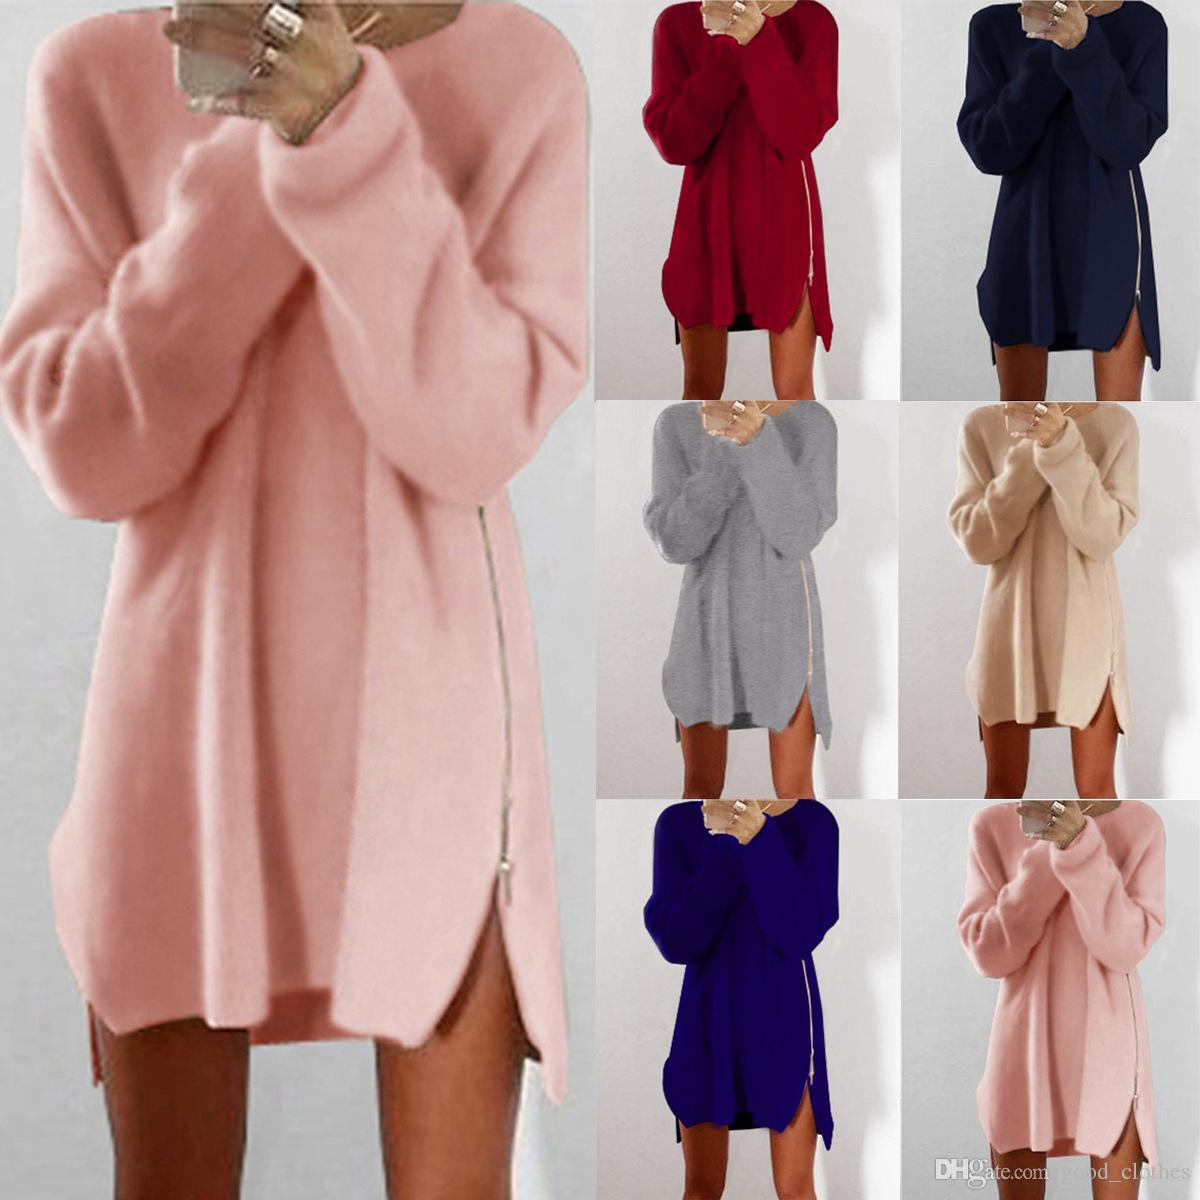 14a8a72d15 Women Winter Zipper Sweater Dress Loose Casual Women Fashion Long Sleeve  Jumper Tops Dress Casual Mini Sweater Dress KKA3802 Short And Long Dress  Pink ...